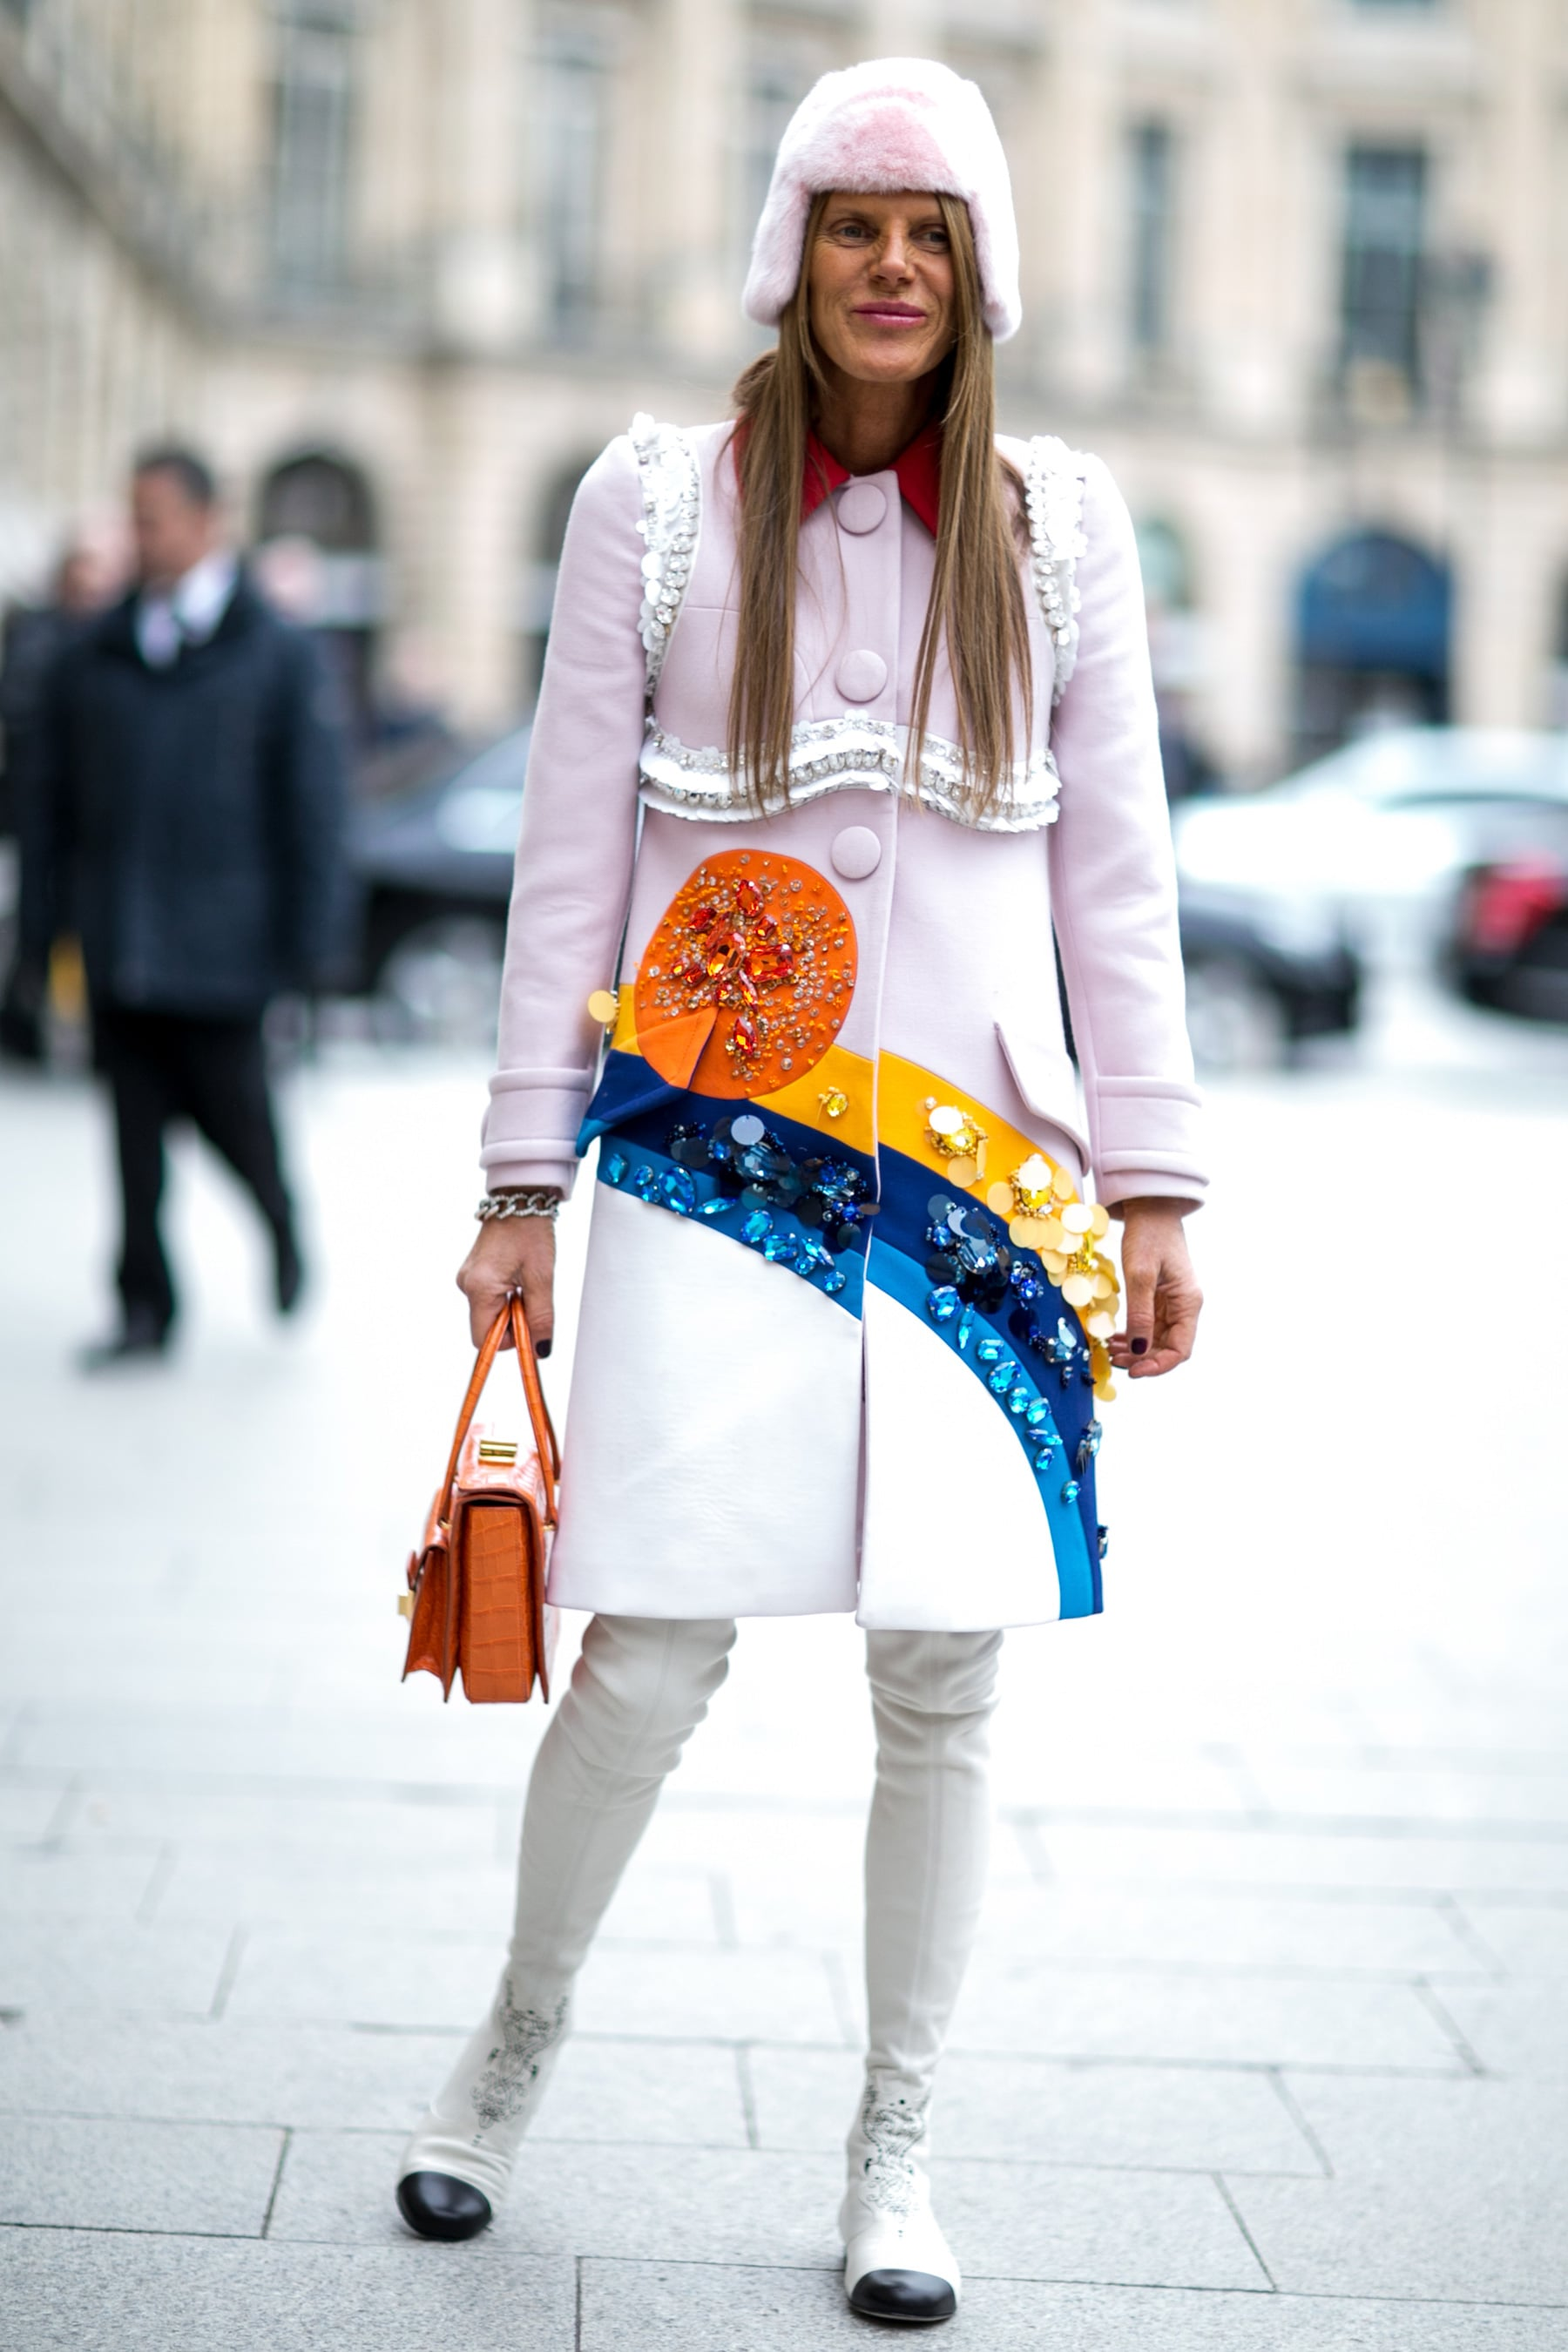 It wouldn't be Anna Dello Russo without some whimsy, this time in the form of a bright coat and Chanel boots.